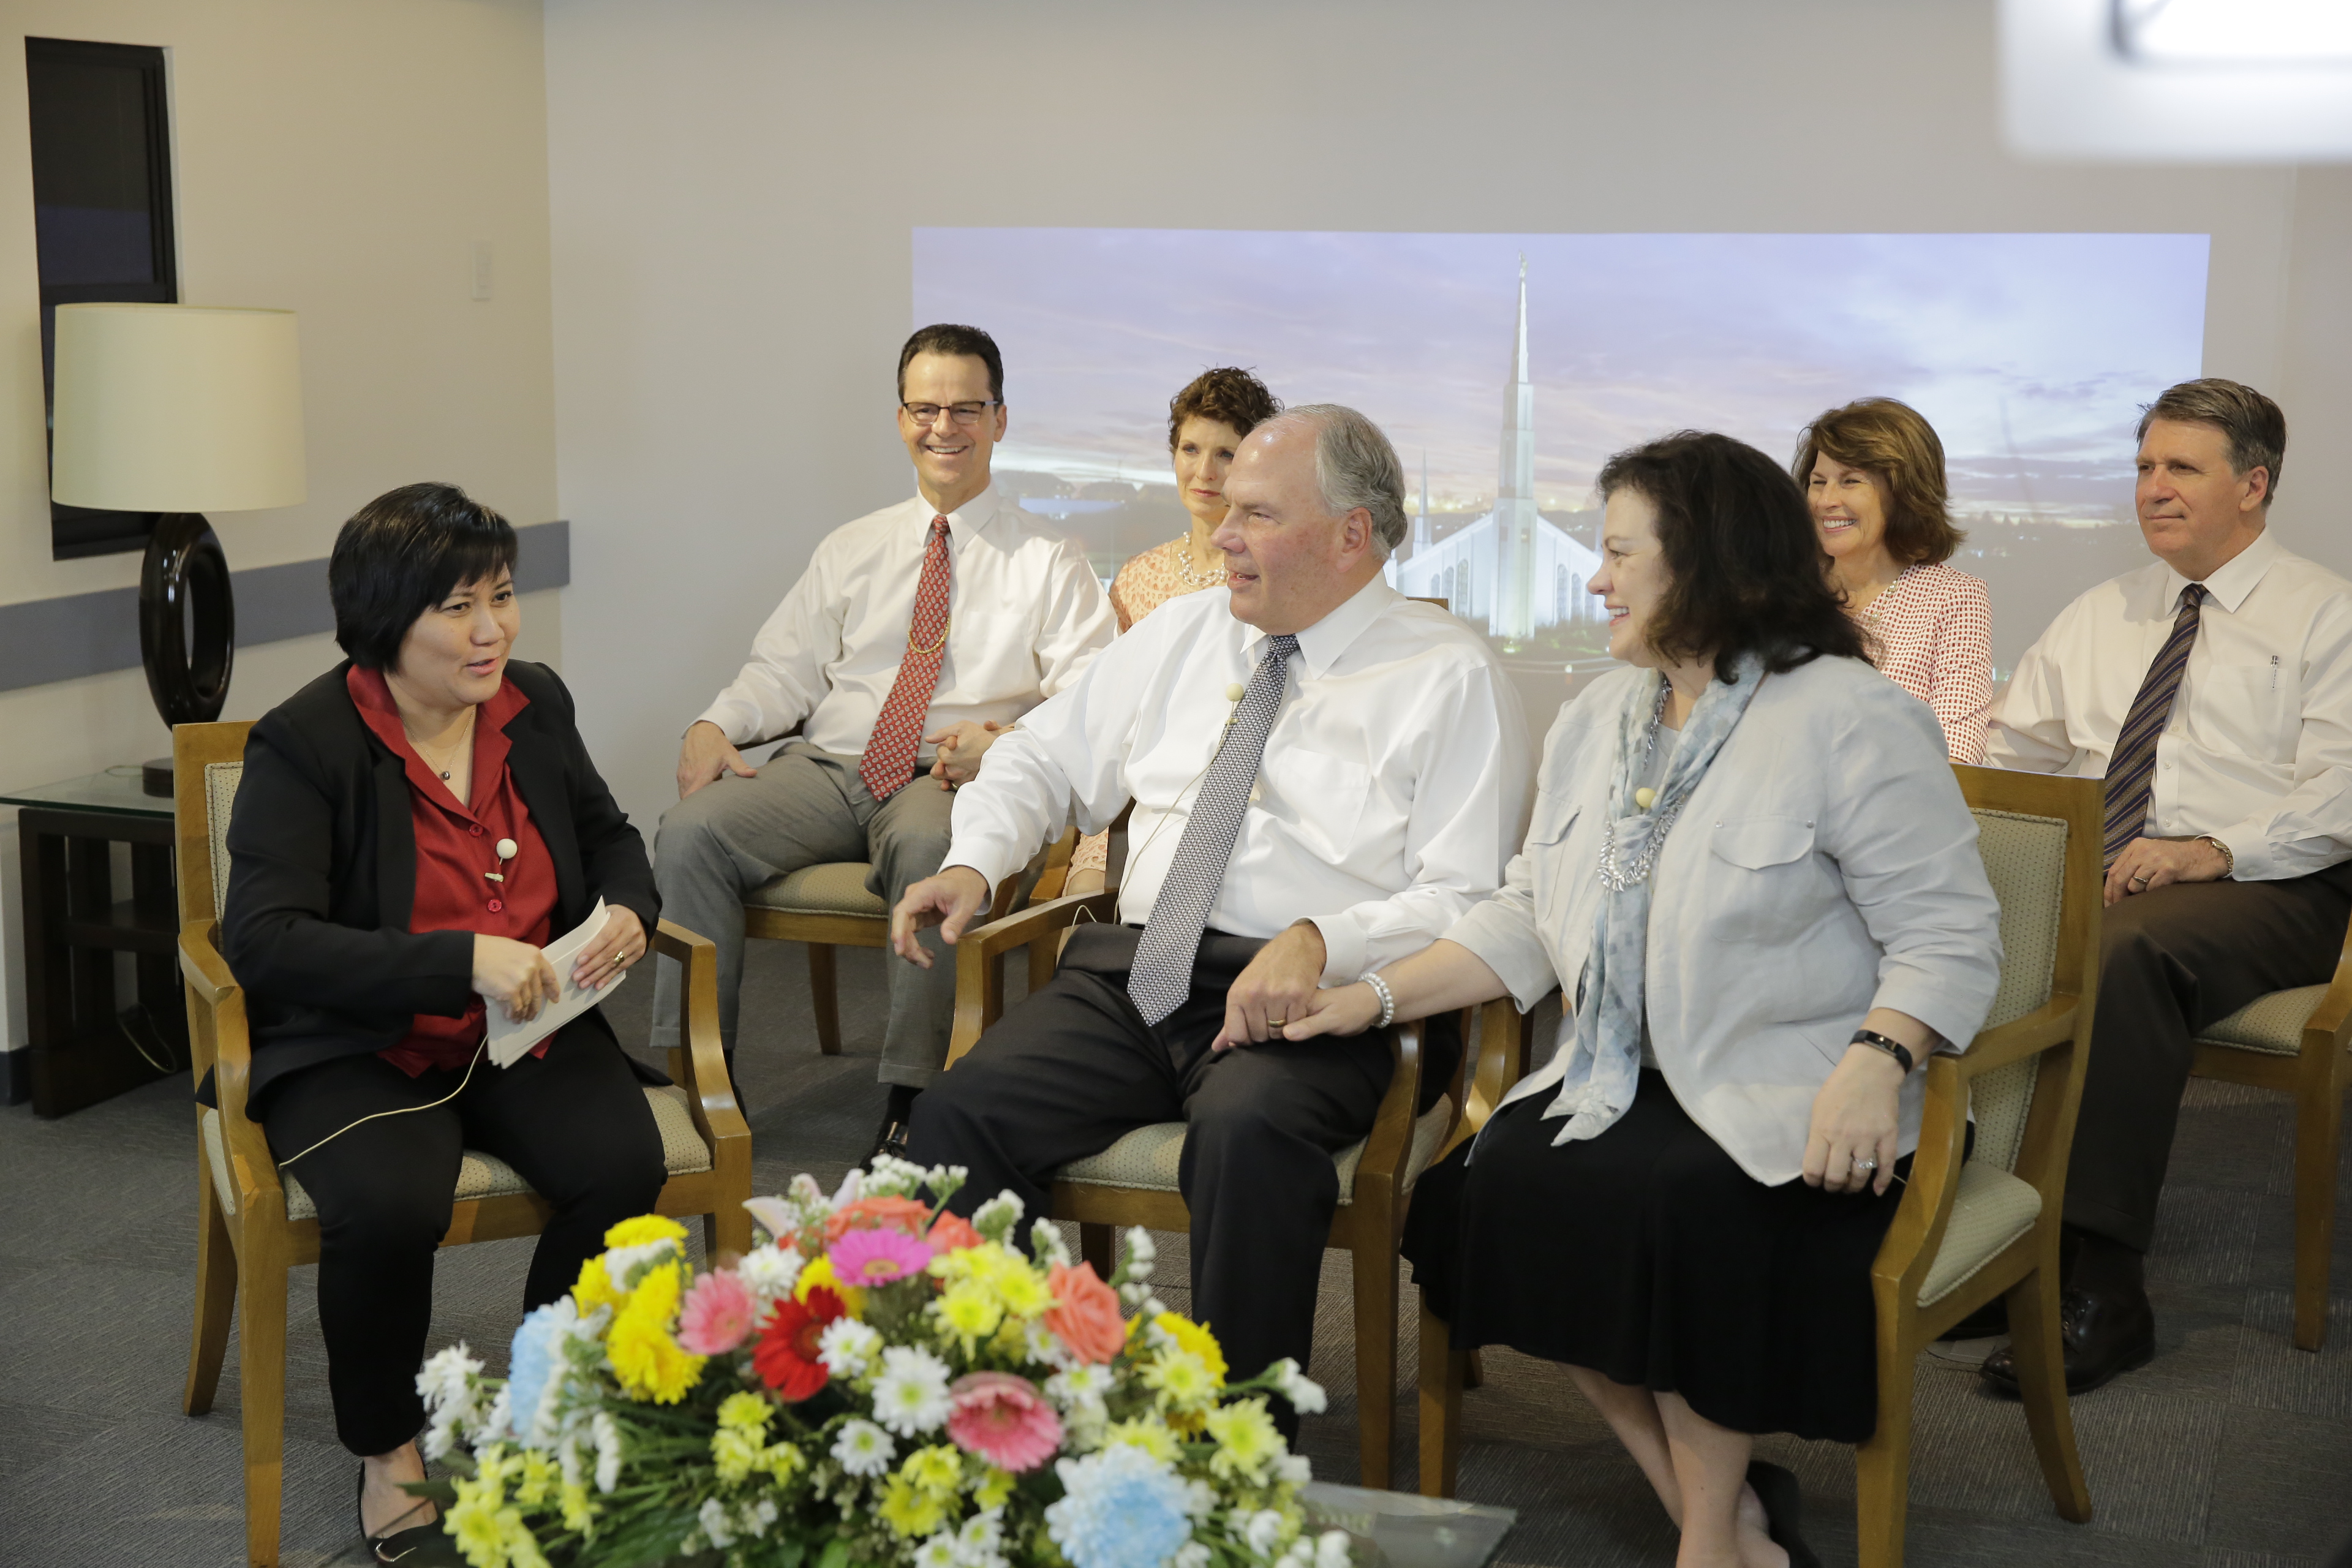 Elder Ronald A. Rasband and his wife, Sister Melanie Rasband, participate in a Facebook Live event moderated by Haidi F. Fajardo on Feb. 23. Elder Shayne M. Bowen, Philippines Area president, and his wife, Sister Lynette Bowen, look on.